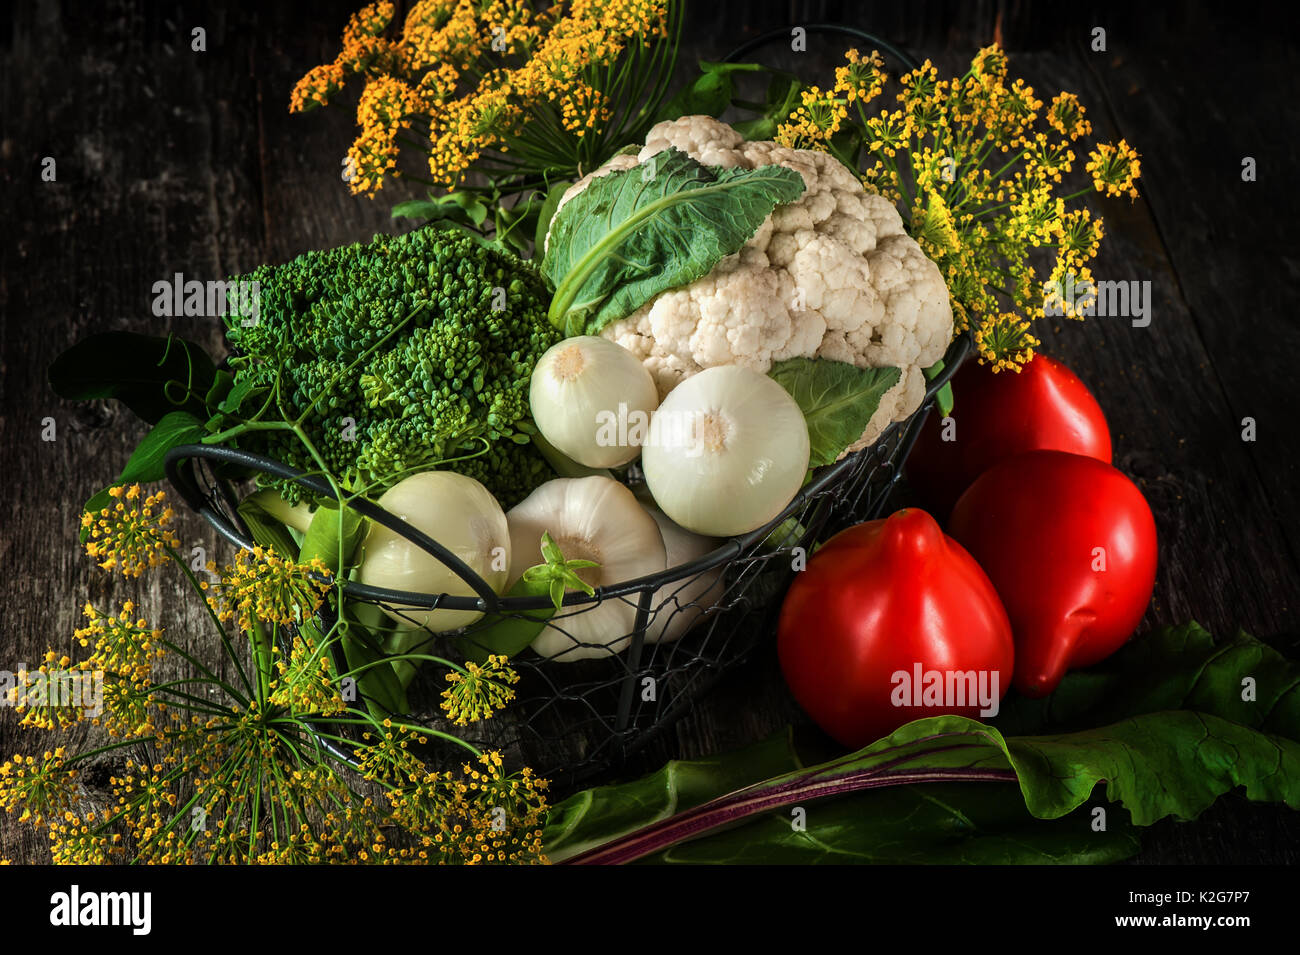 Mixed vegetables of cauliflower and broccoli, garlic, green onions, tomatoes and green peas on a wooden background - Stock Image